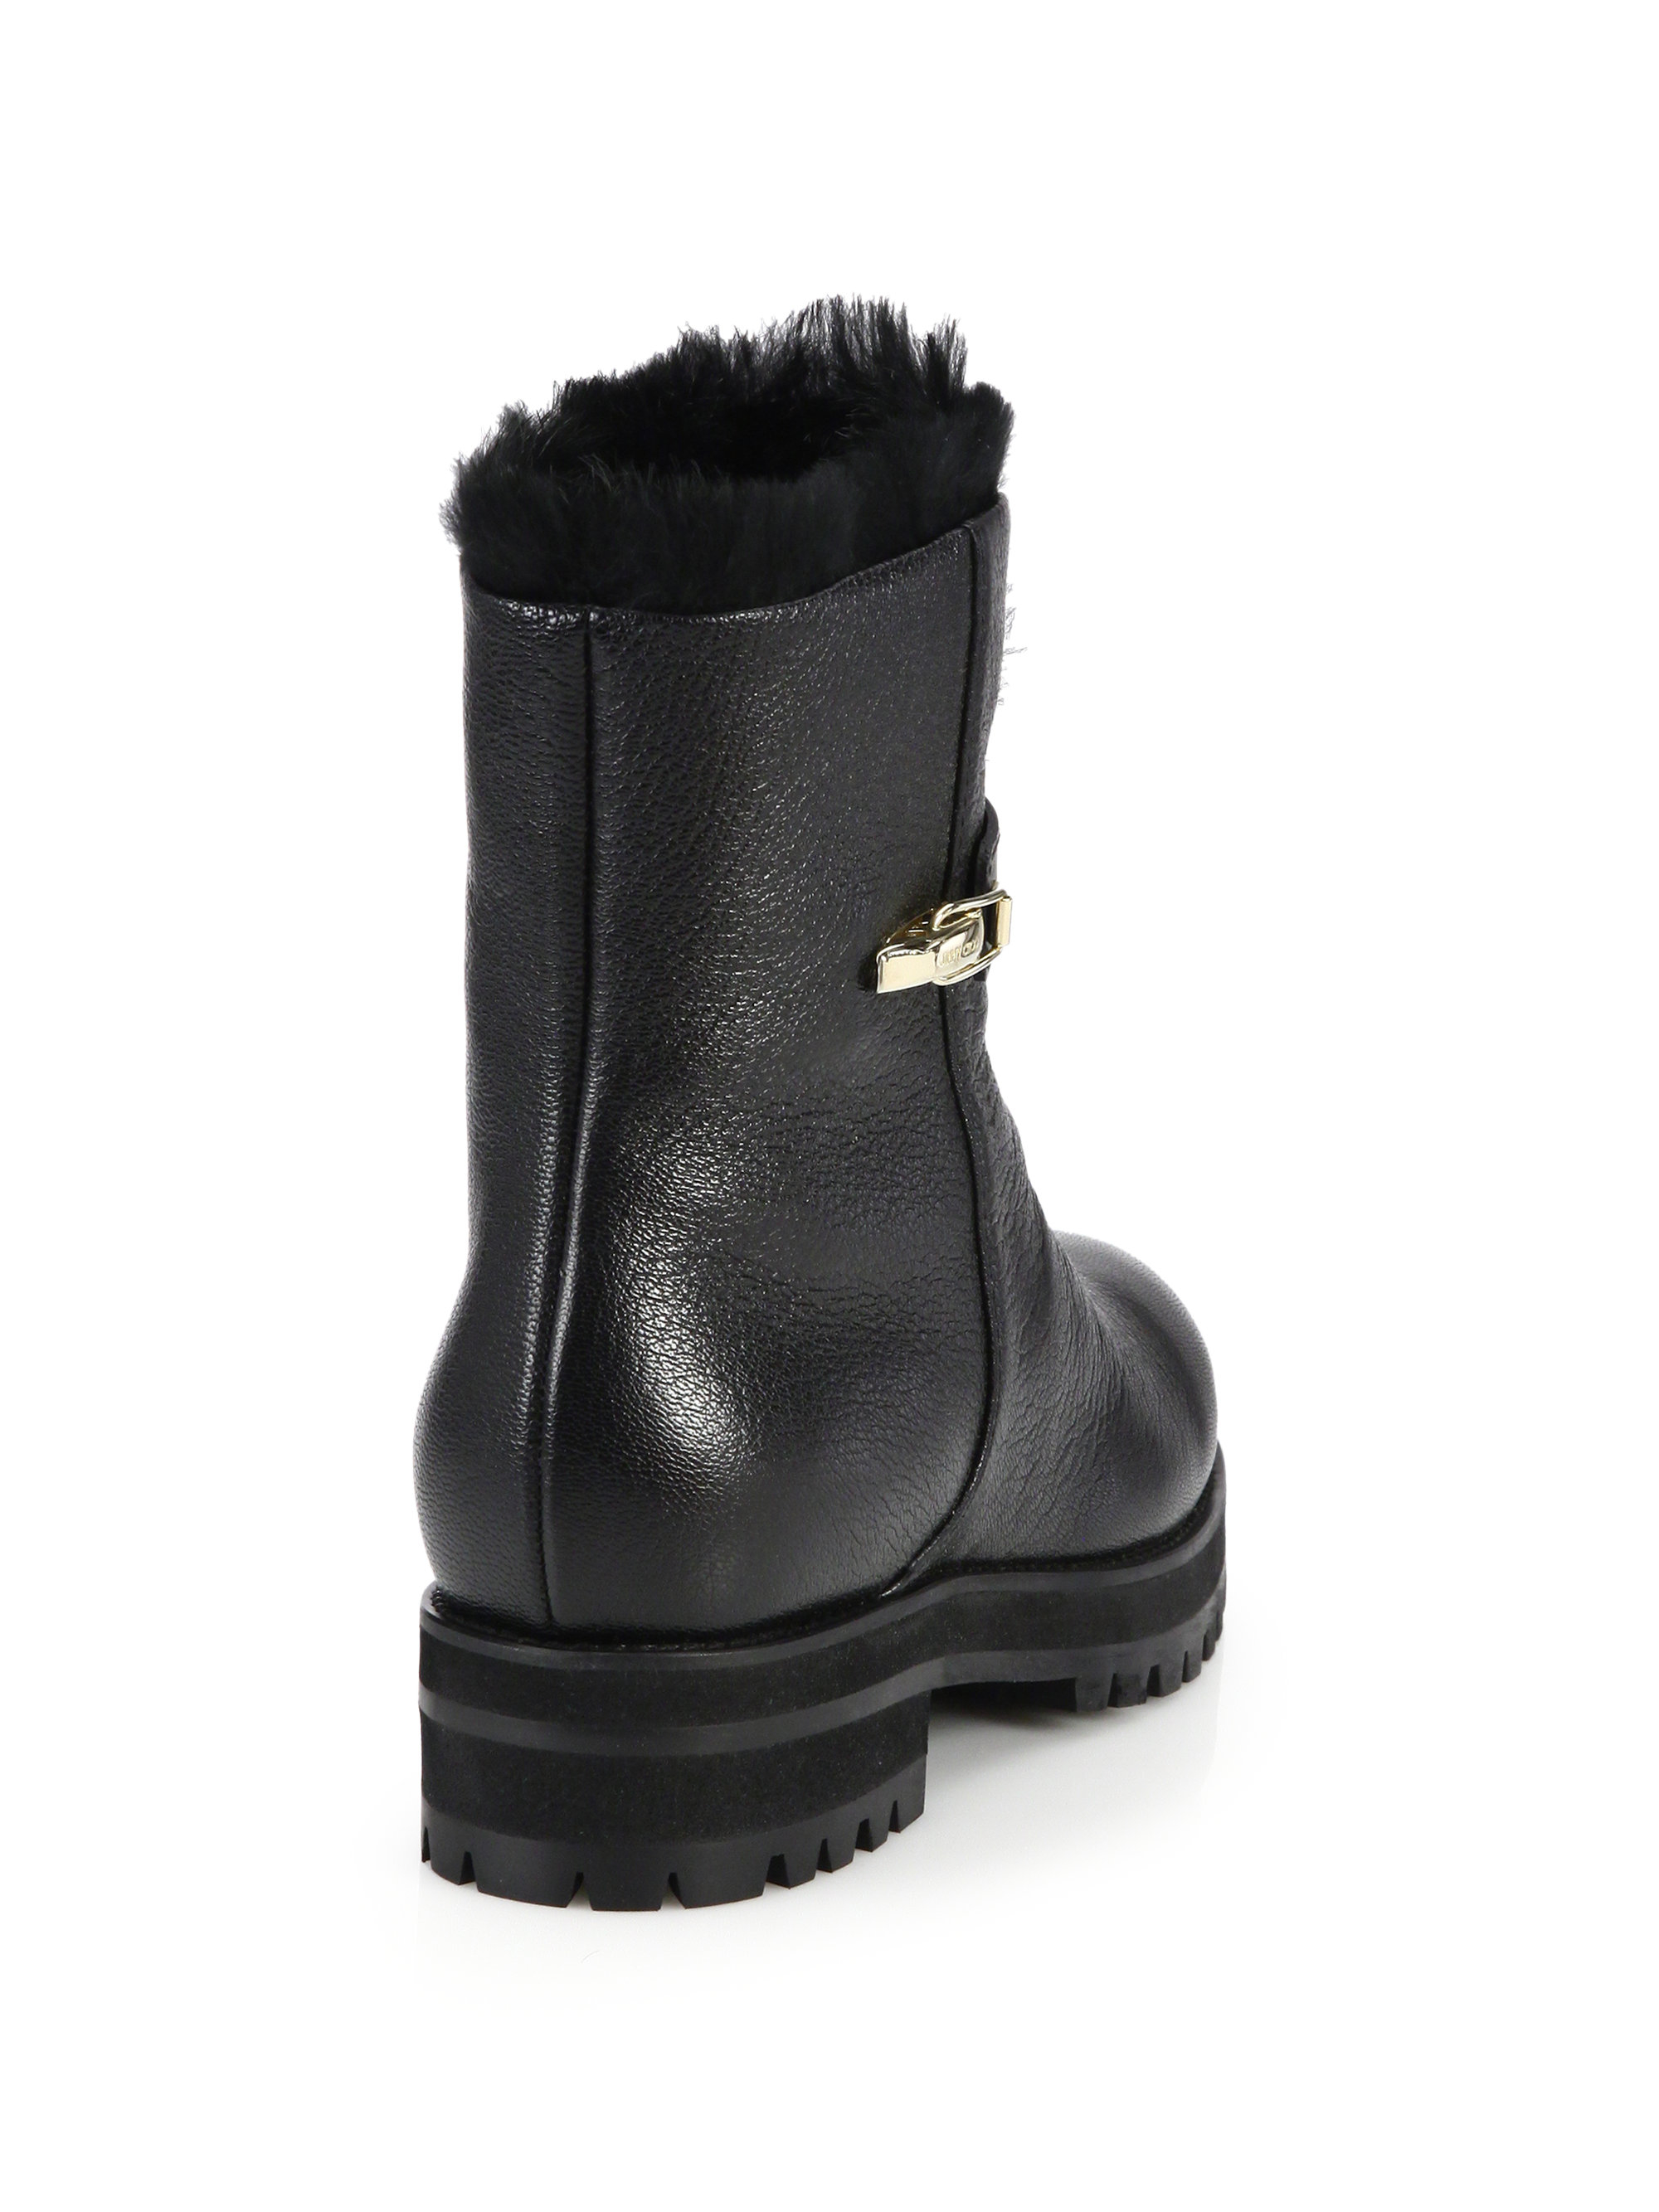 Jimmy Choo Fur-Lined Duffel Ankle Boots buy cheap recommend free shipping enjoy low price cheap online BLbKhdm